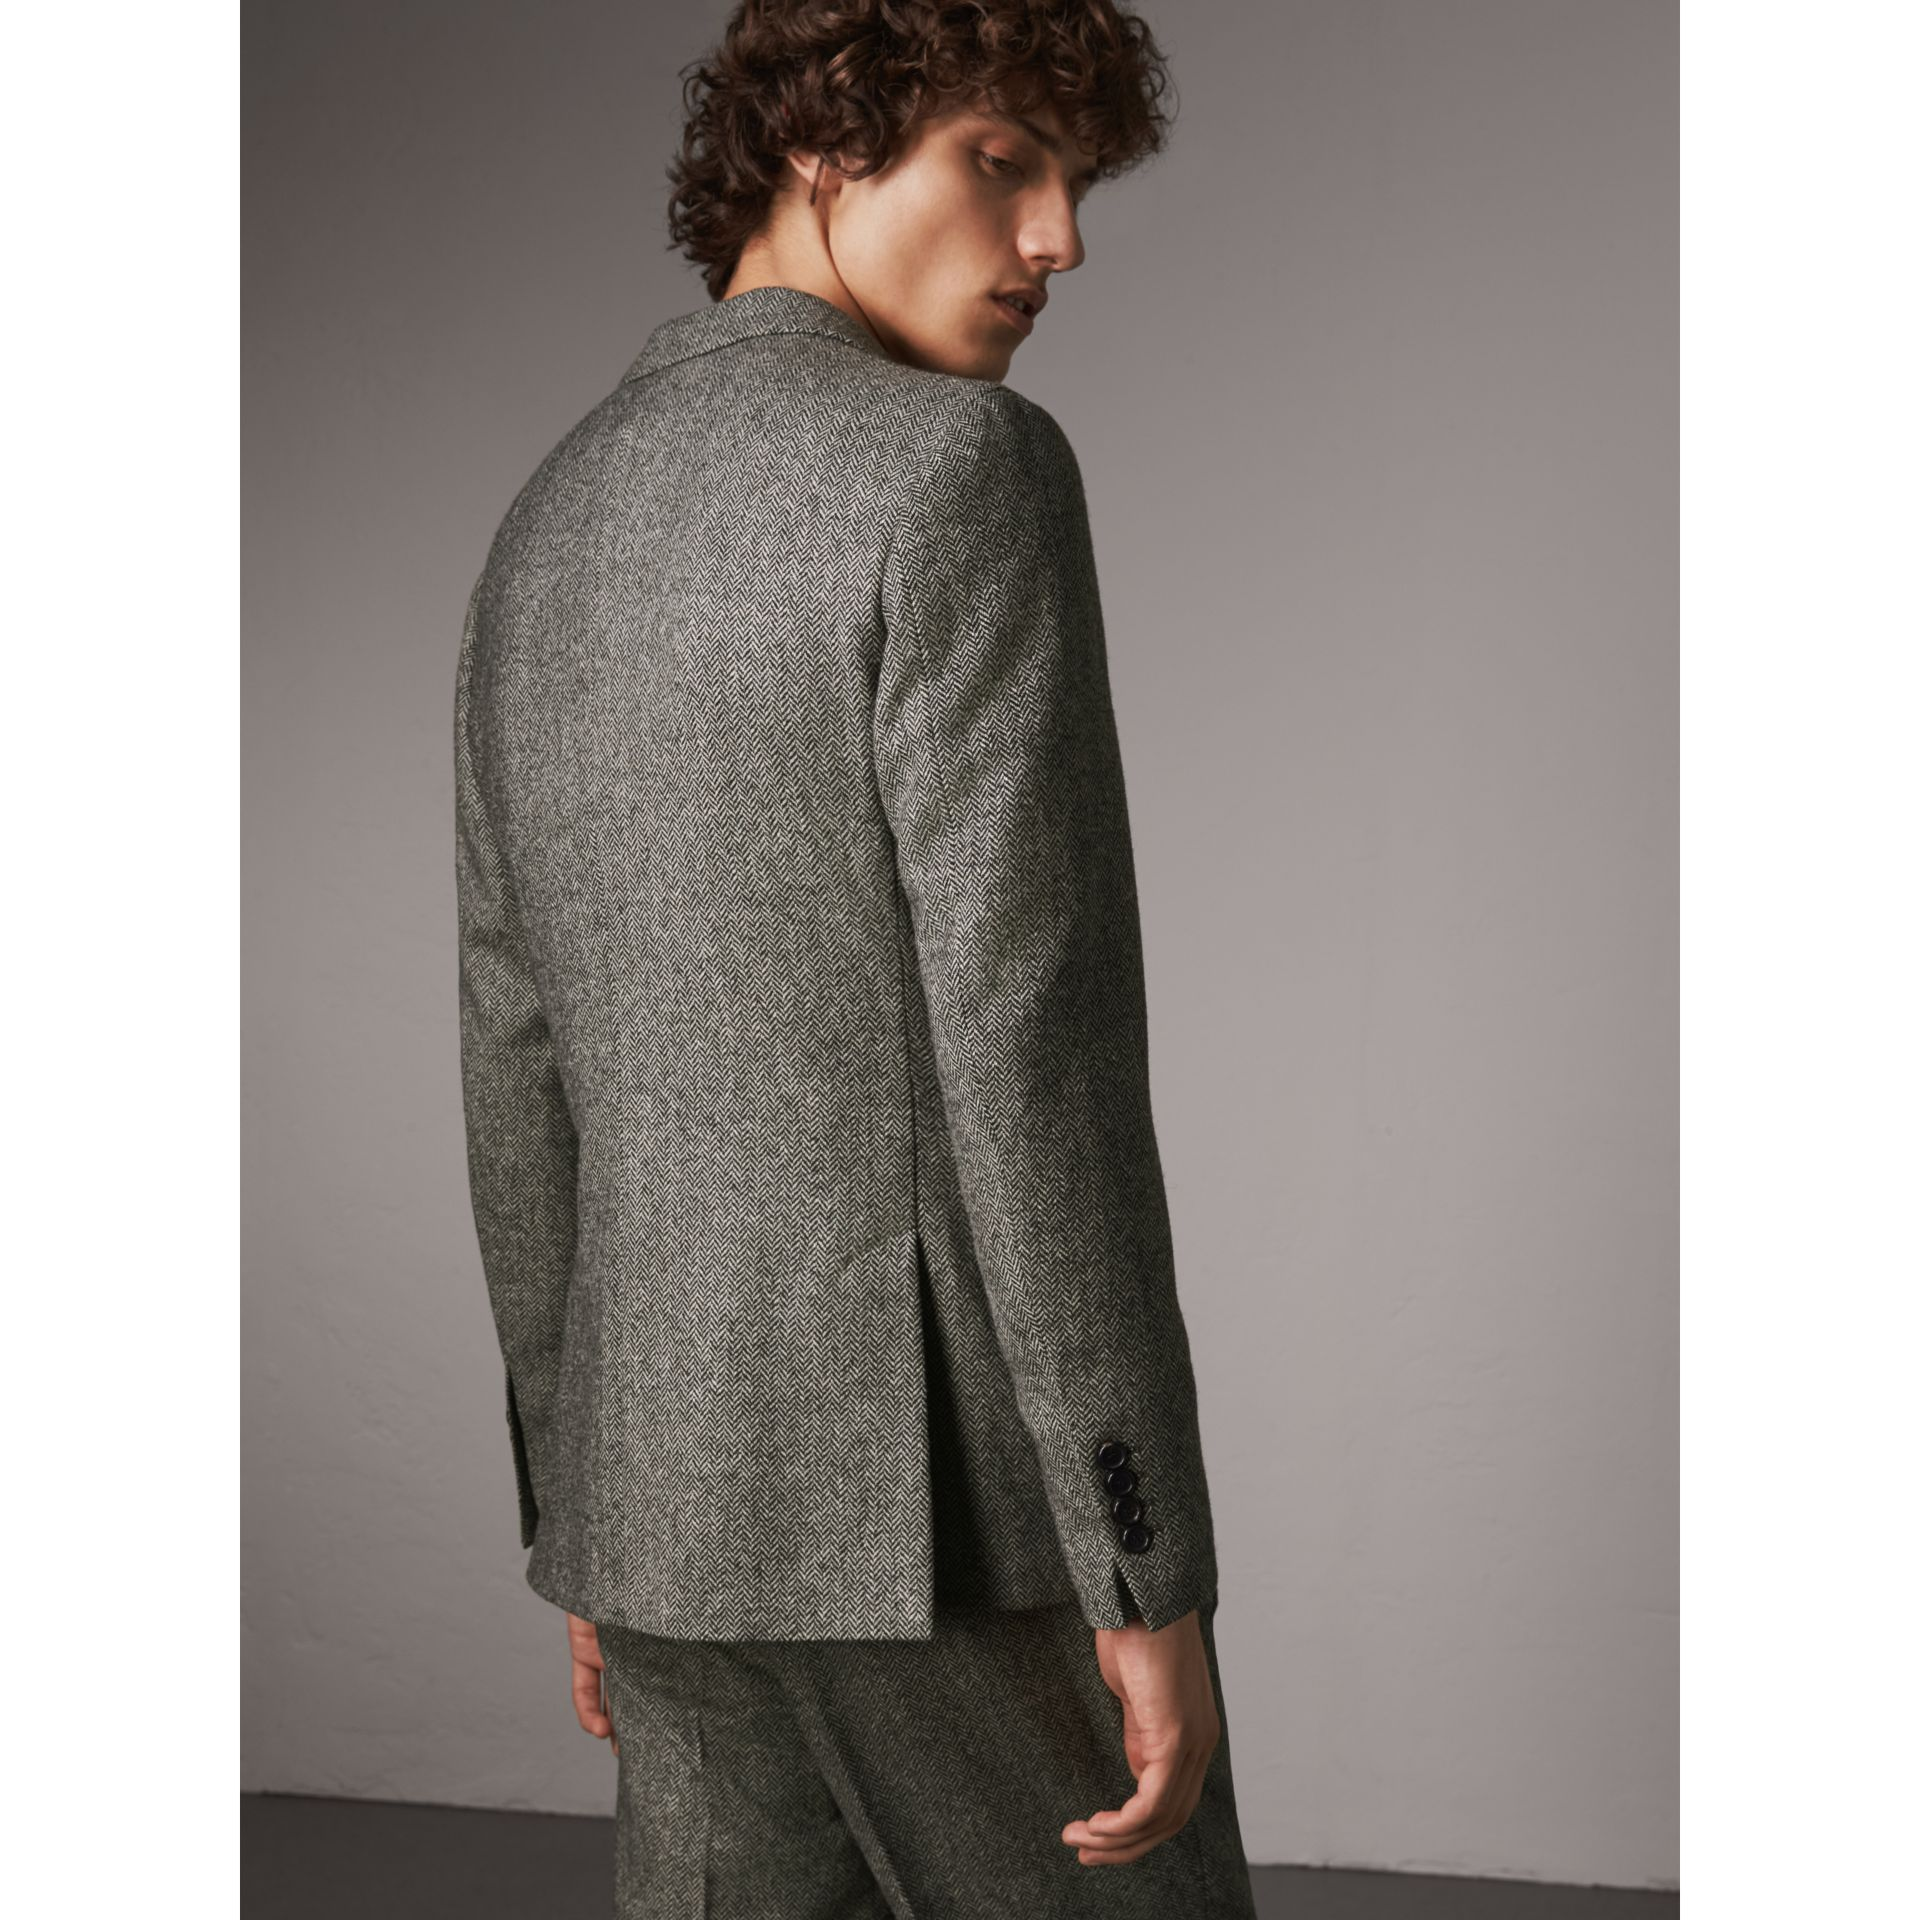 Soho Fit Herringbone Wool Tailored Jacket in Black / White - Men | Burberry - gallery image 2